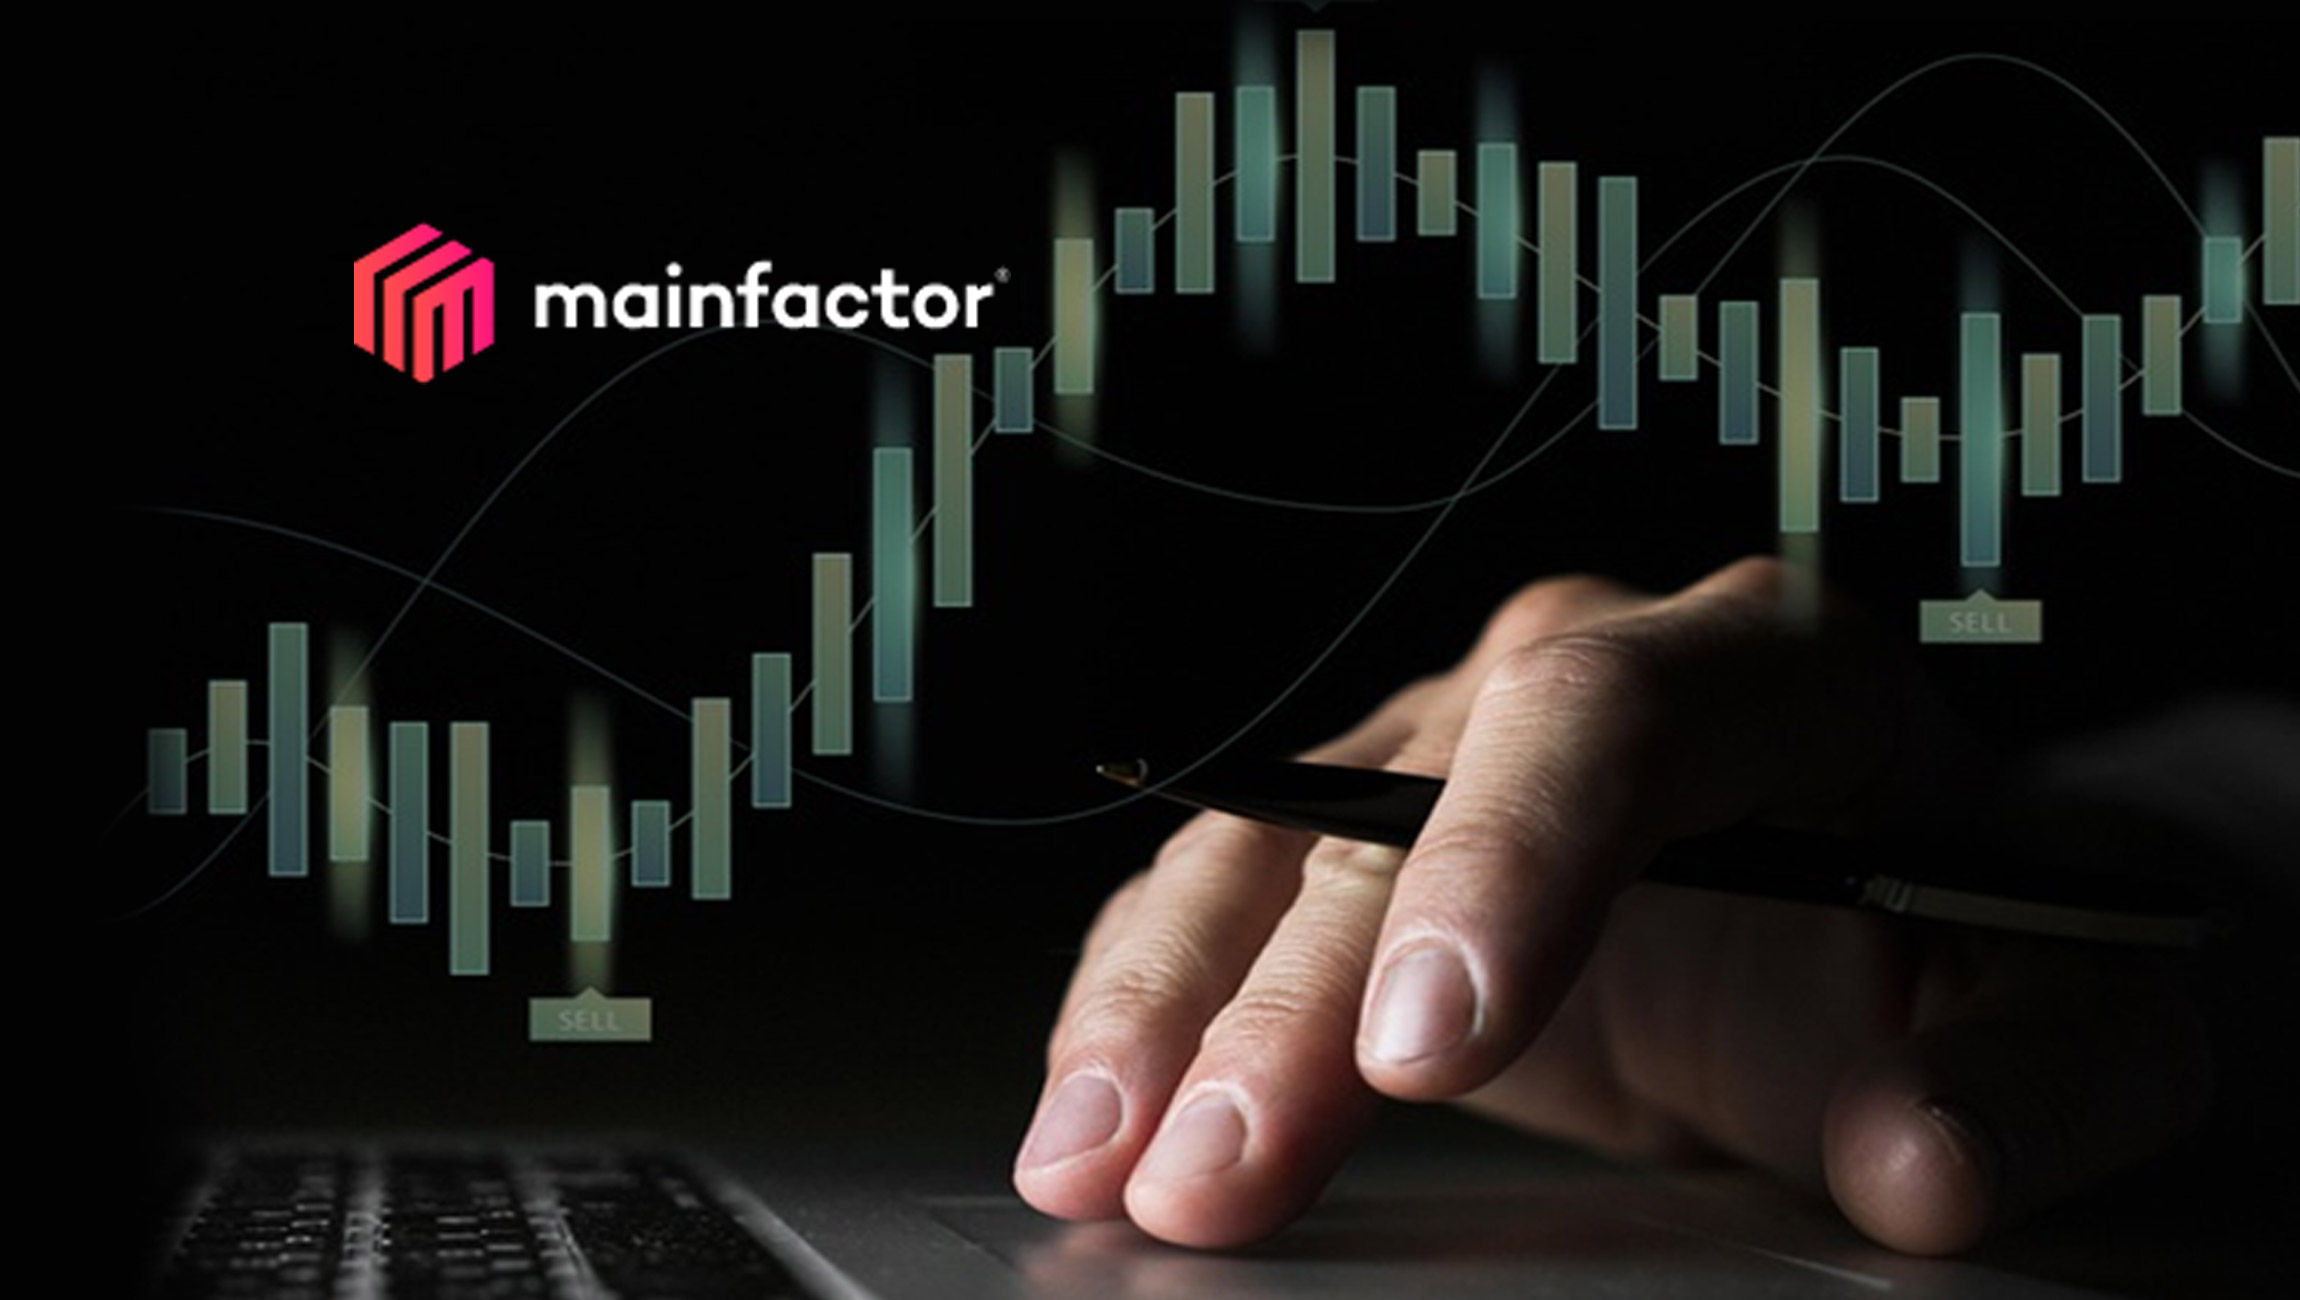 Mainfactor Raises $69M to Acquire Direct-To-Consumer Companies